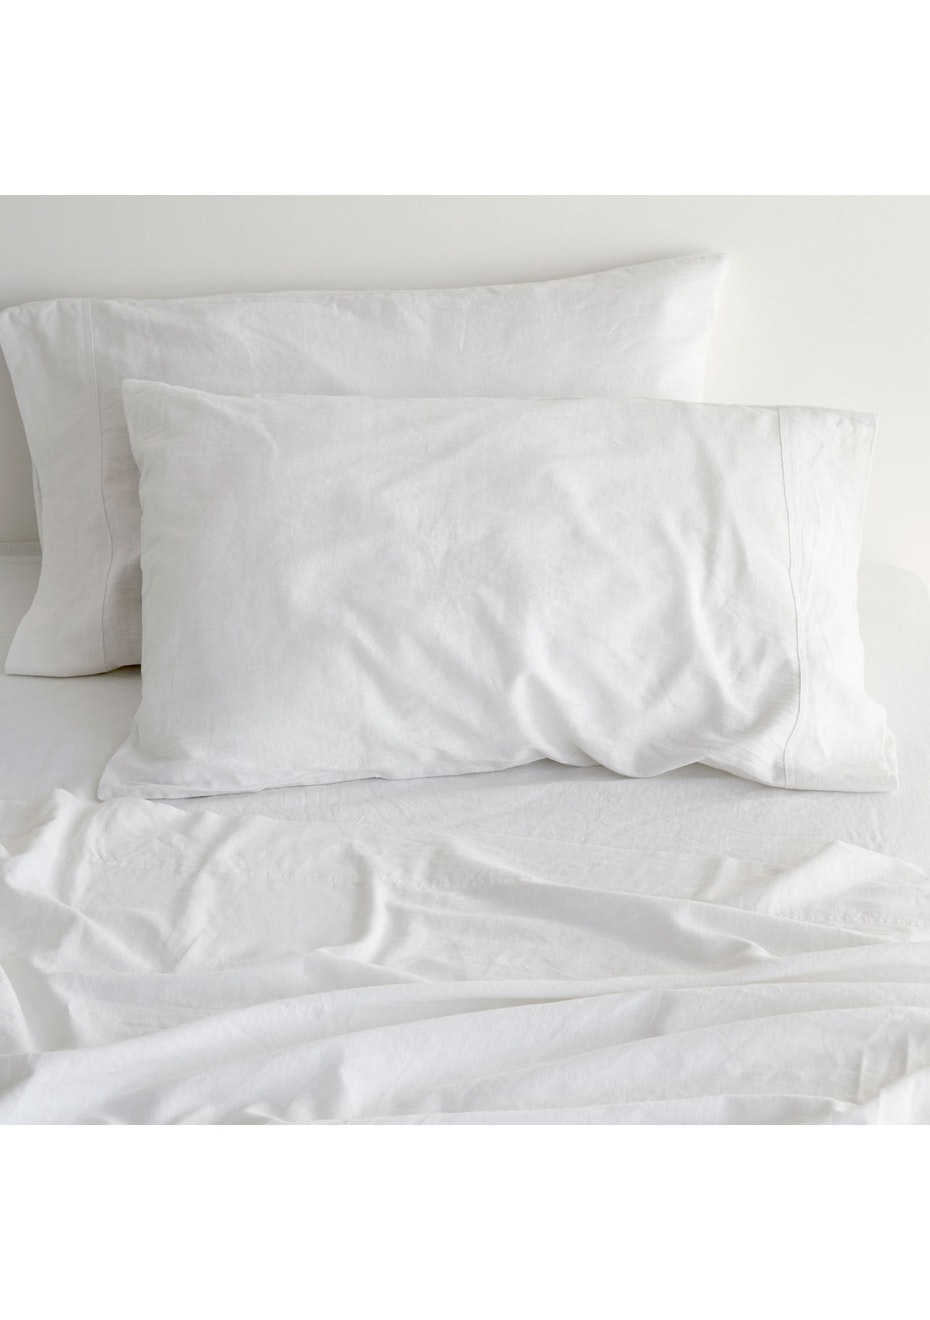 Canningvale - Sogno Linen Cotton Sheet Set Carrara White Queen Bed